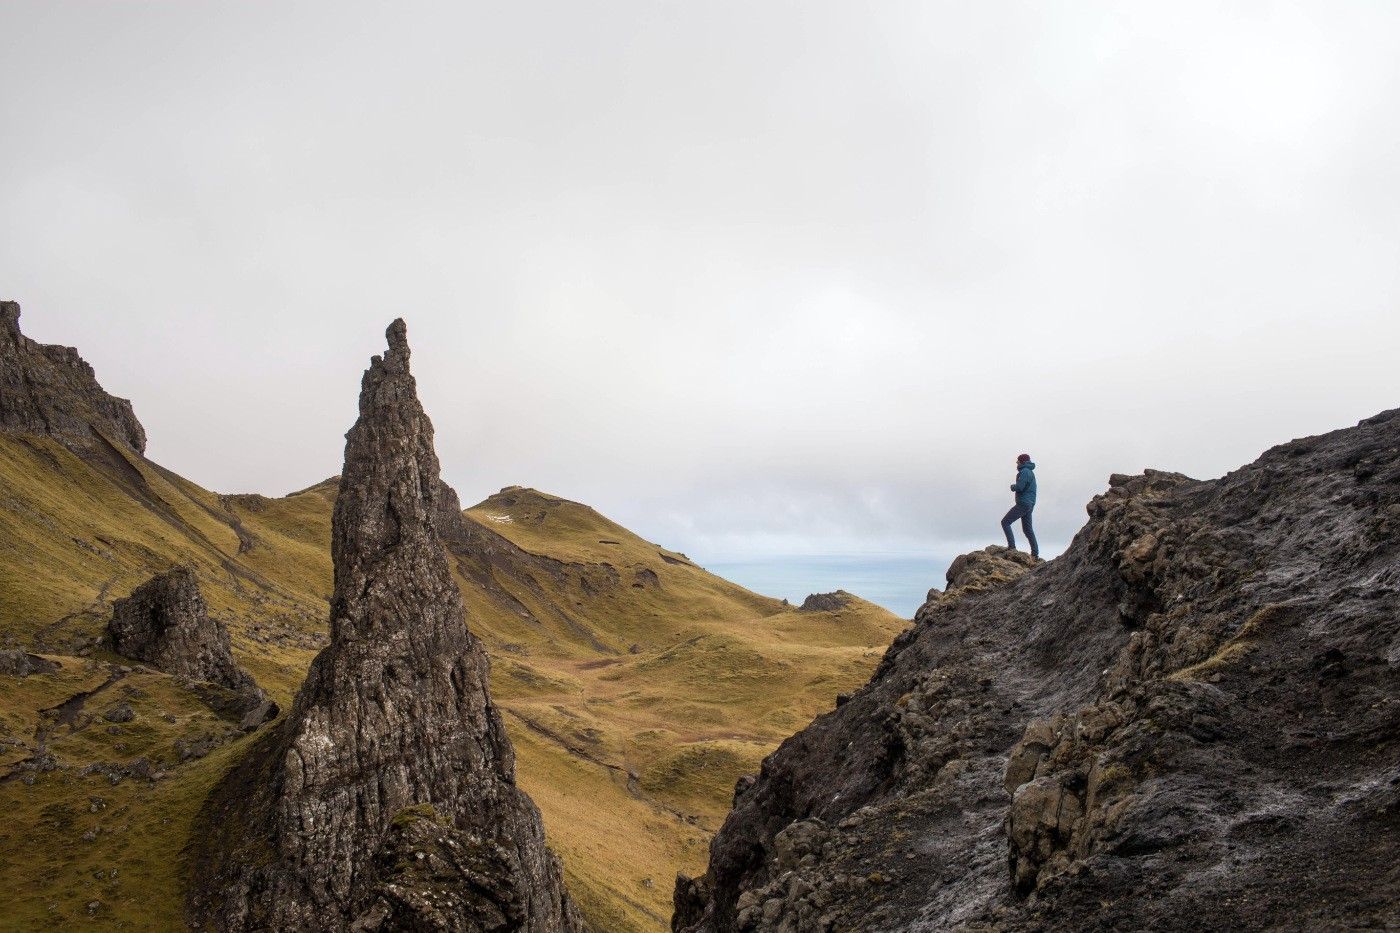 A person standing on top of a rock formation, advancing towards an even higher peak.